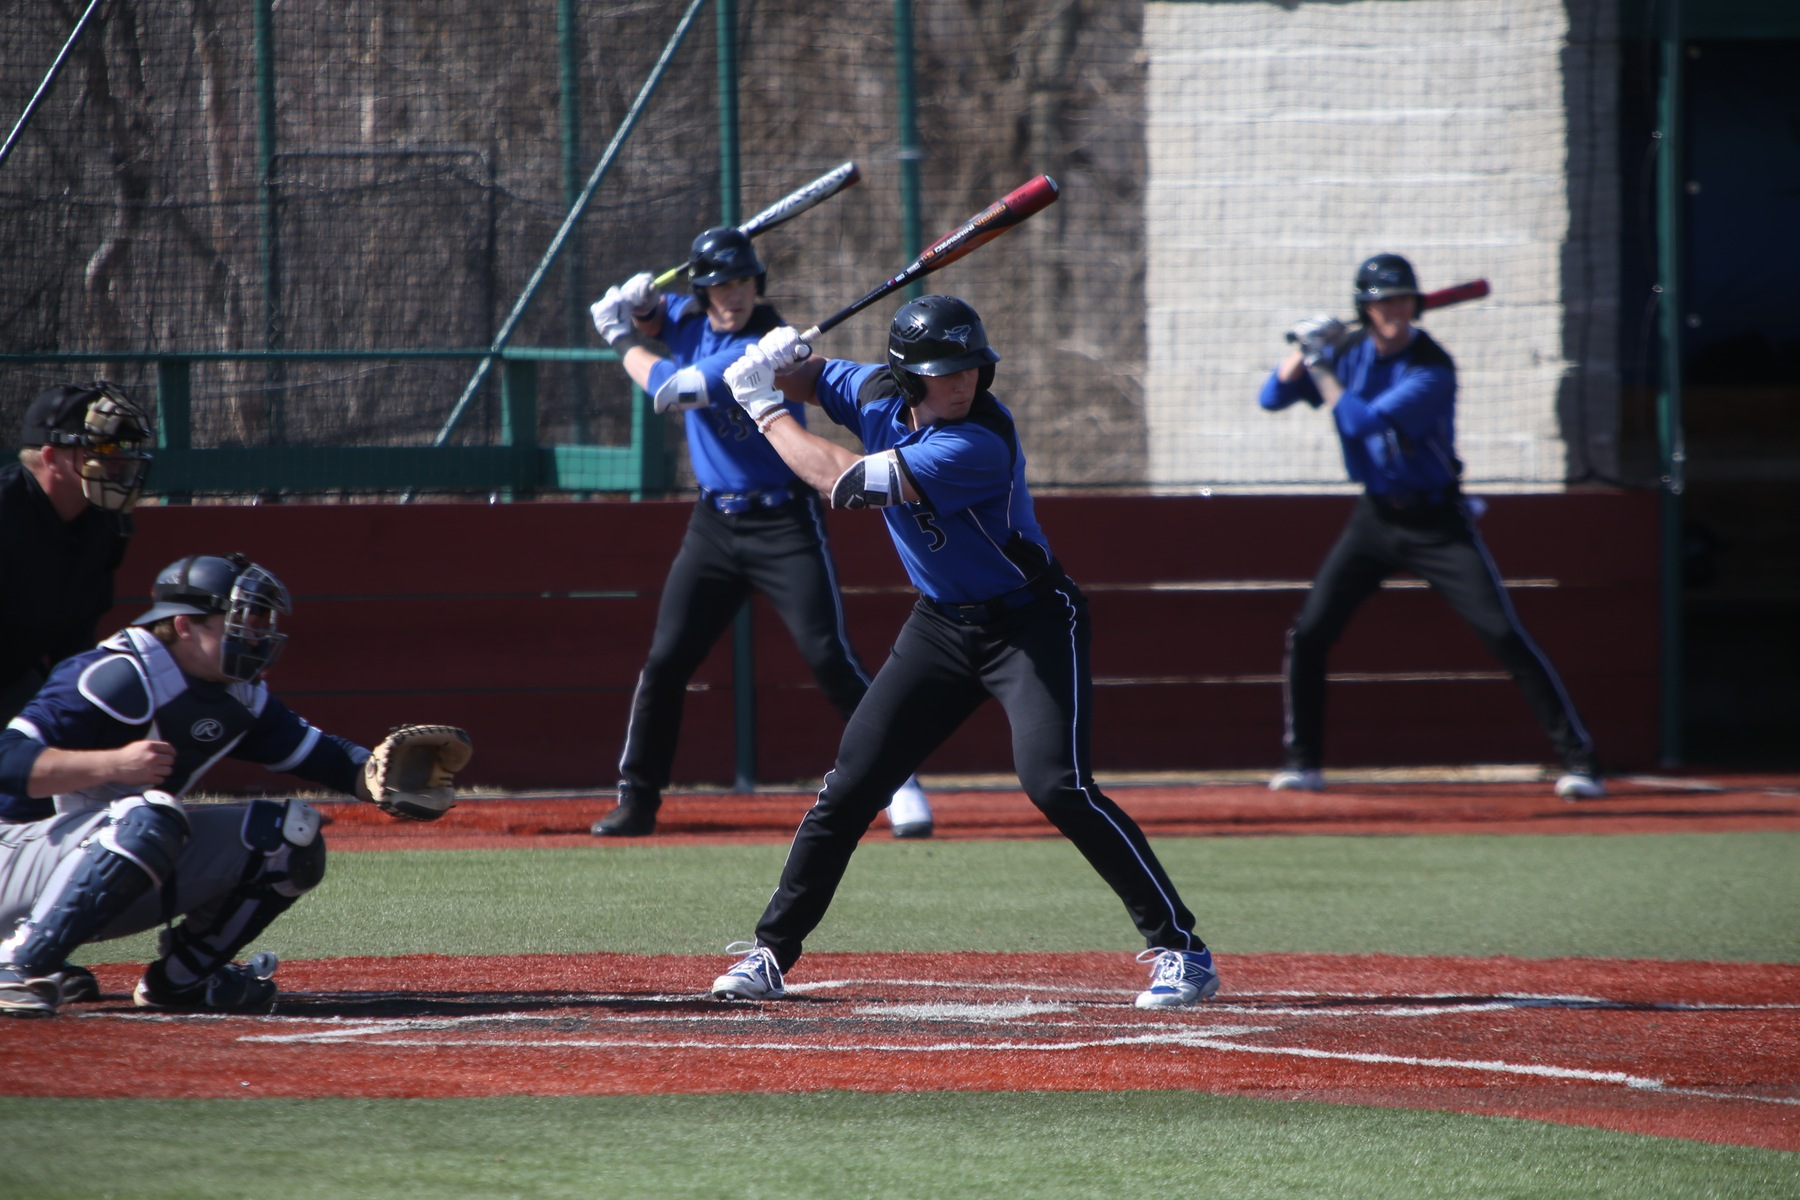 Reivers Back on Track, Sweep DMACC in Midweek DH